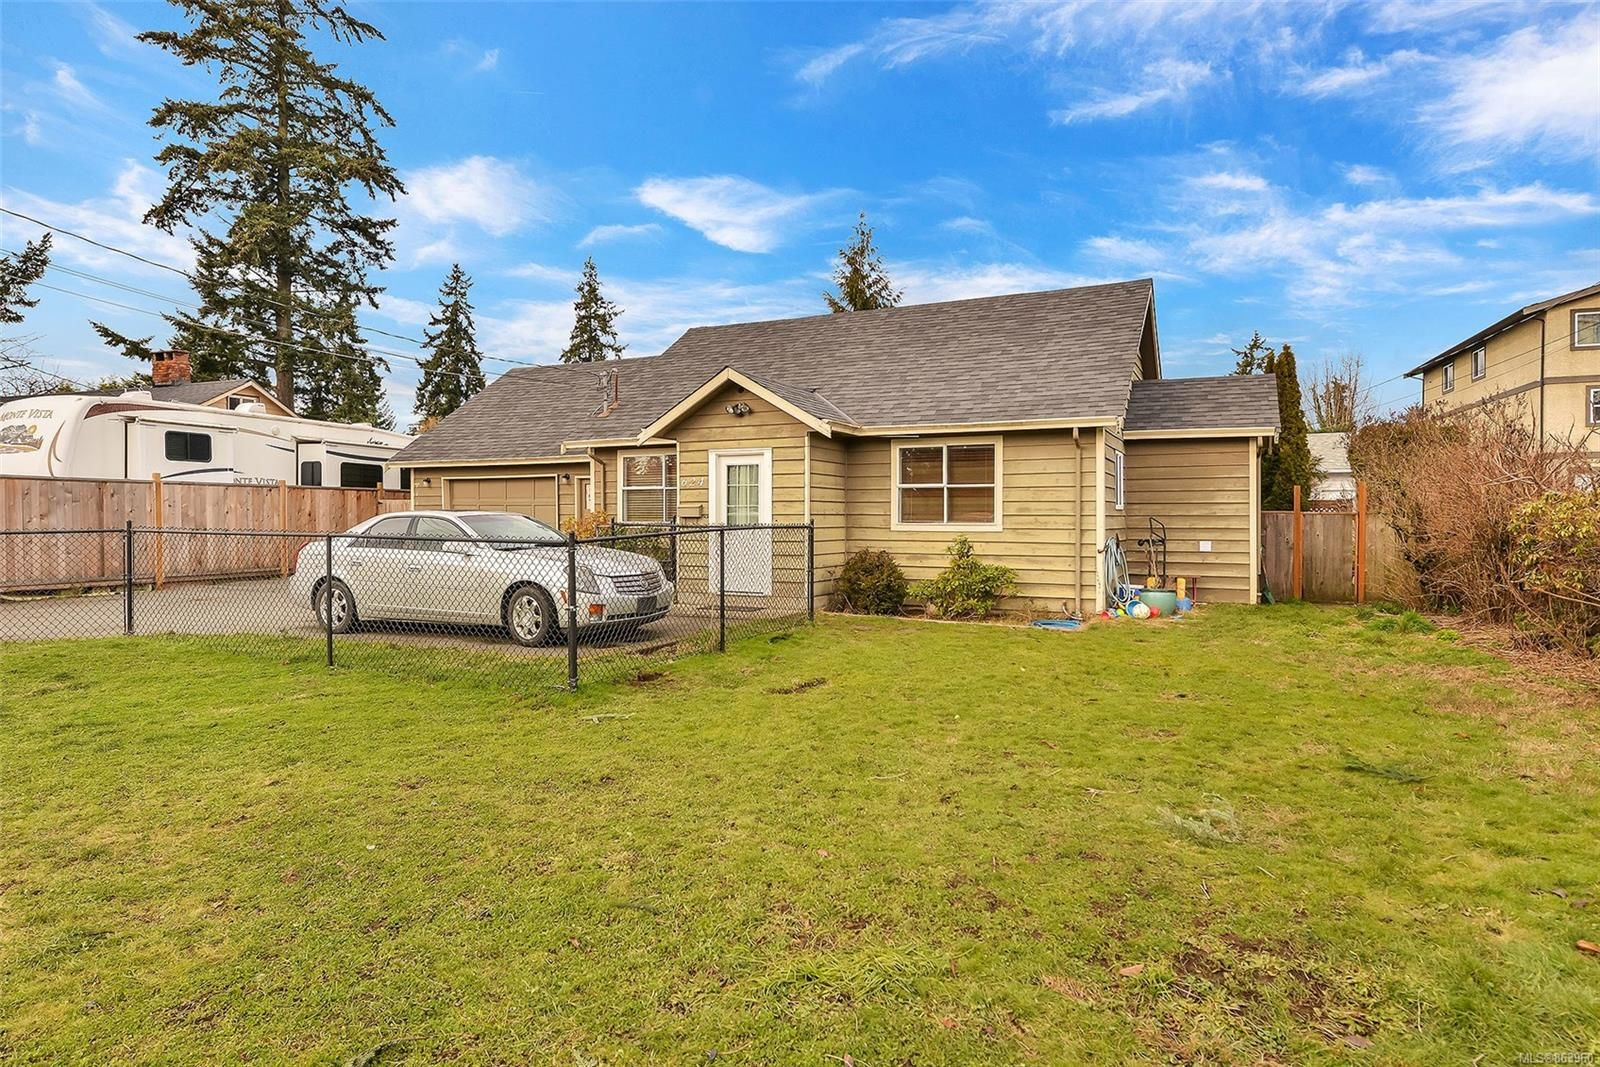 Main Photo: 624 Atkins Rd in : La Mill Hill House for sale (Langford)  : MLS®# 863960